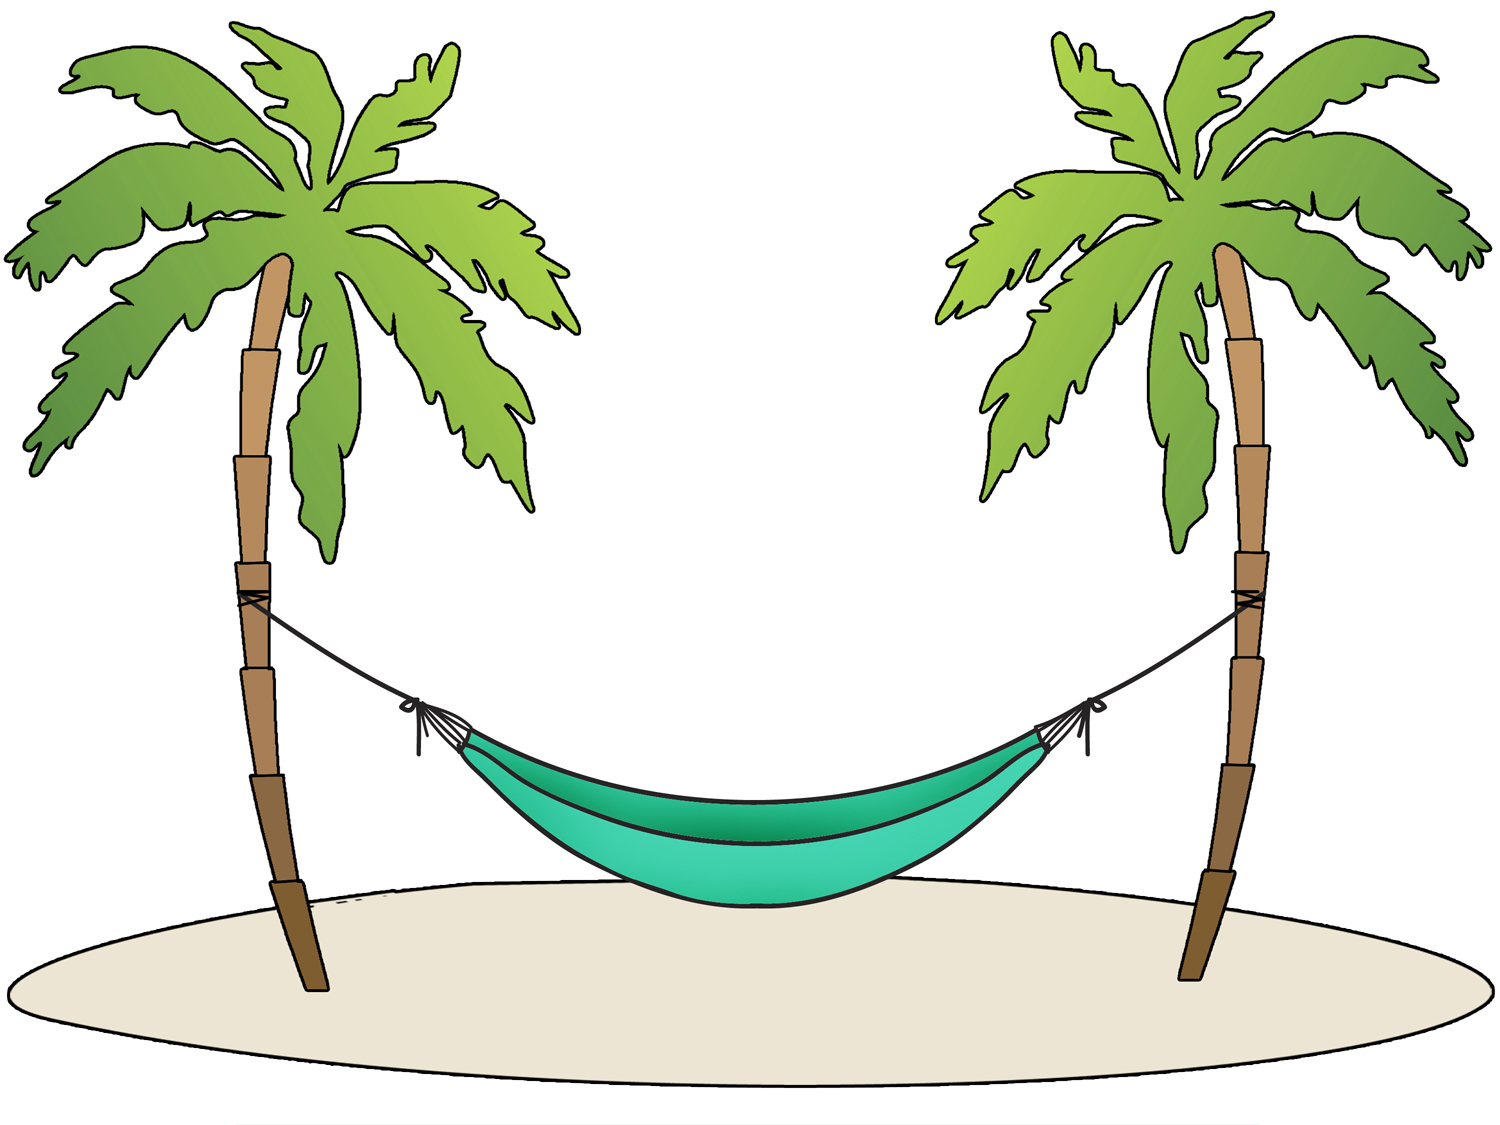 Clipart hammok jpg library Collection of Hammock clipart | Free download best Hammock clipart ... jpg library